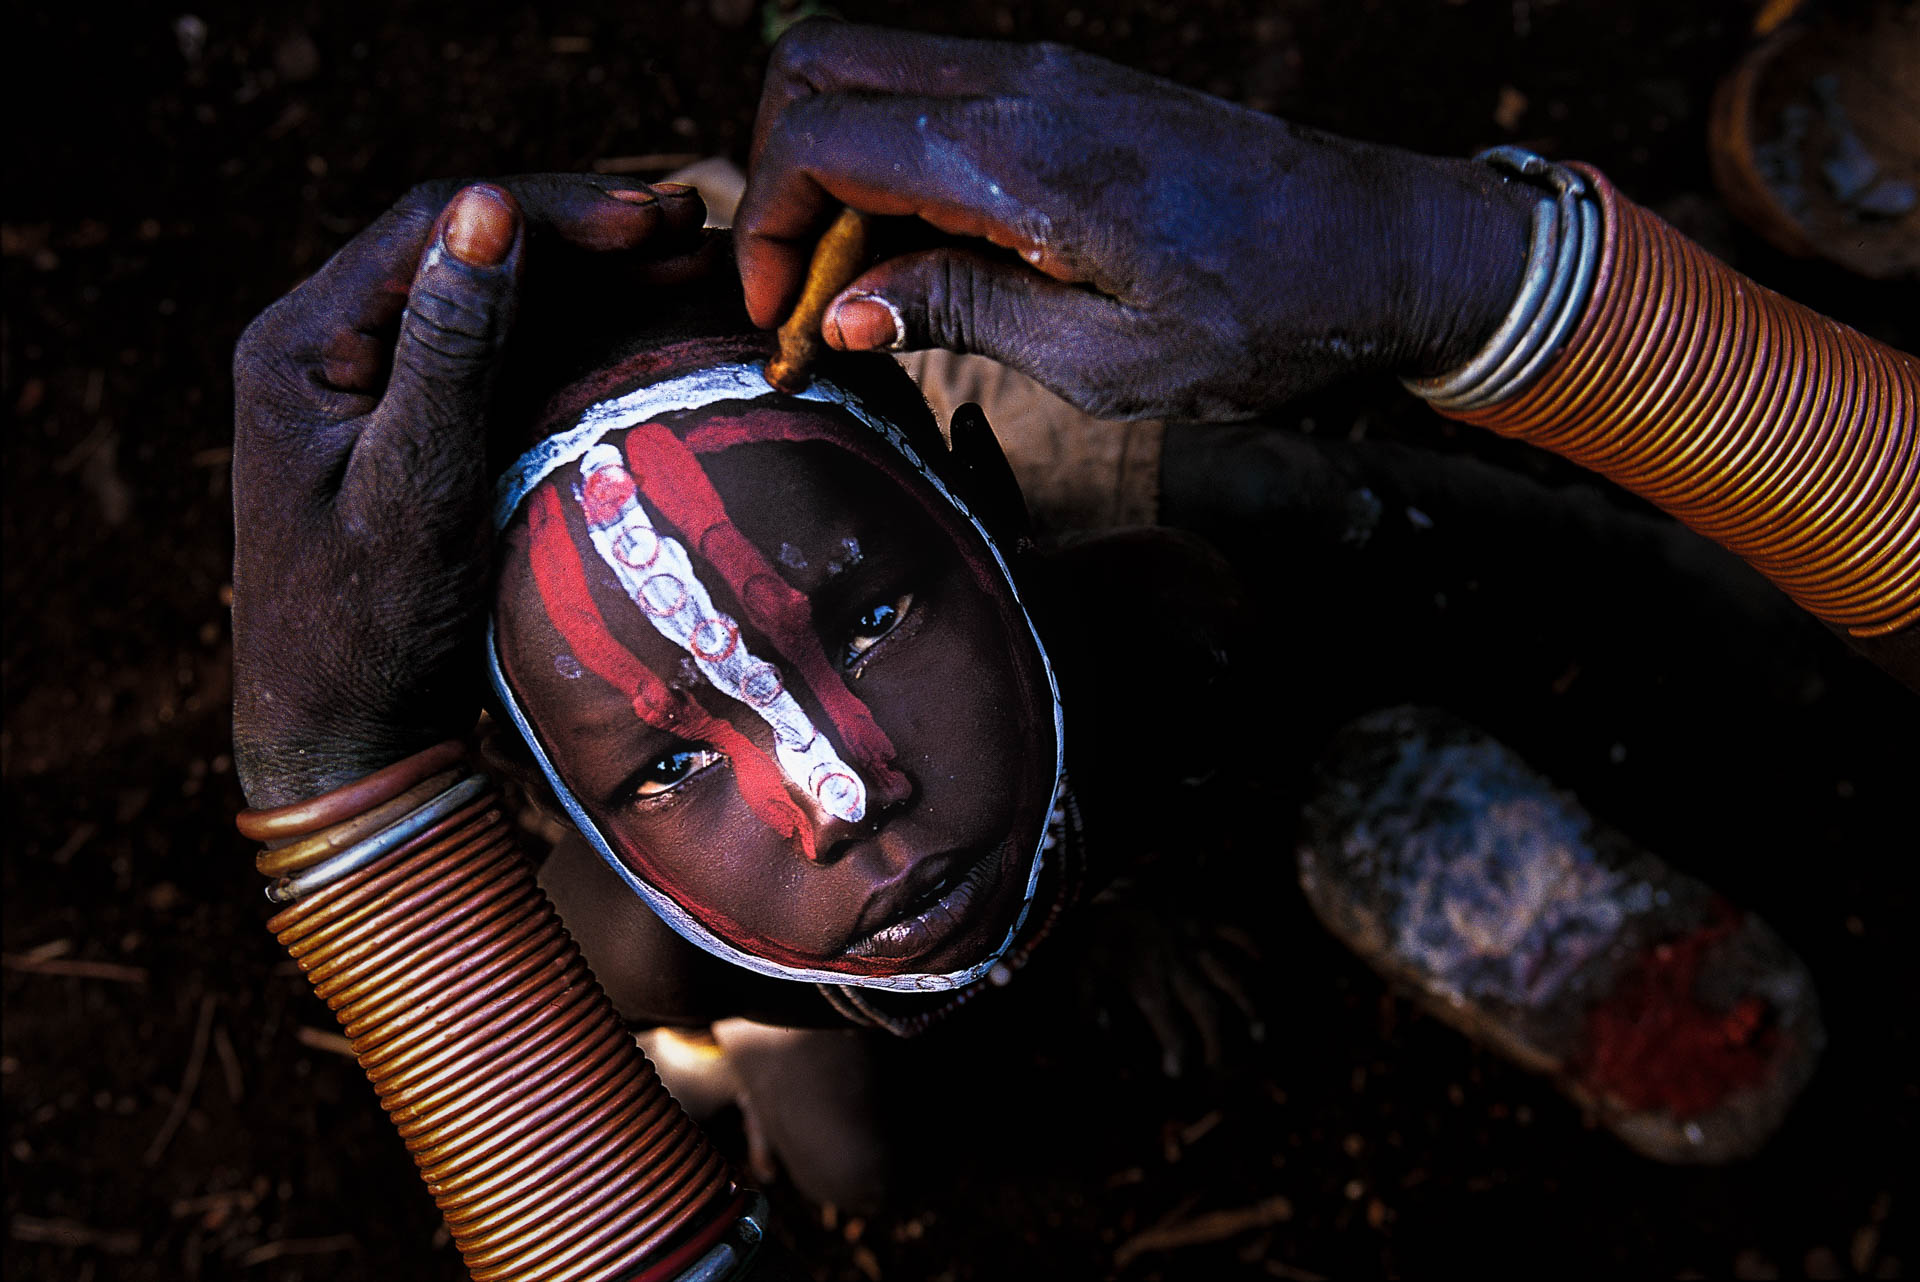 Ghere Kara, the village expert, meticulously paints a child's face using a cartridge case as a brush.